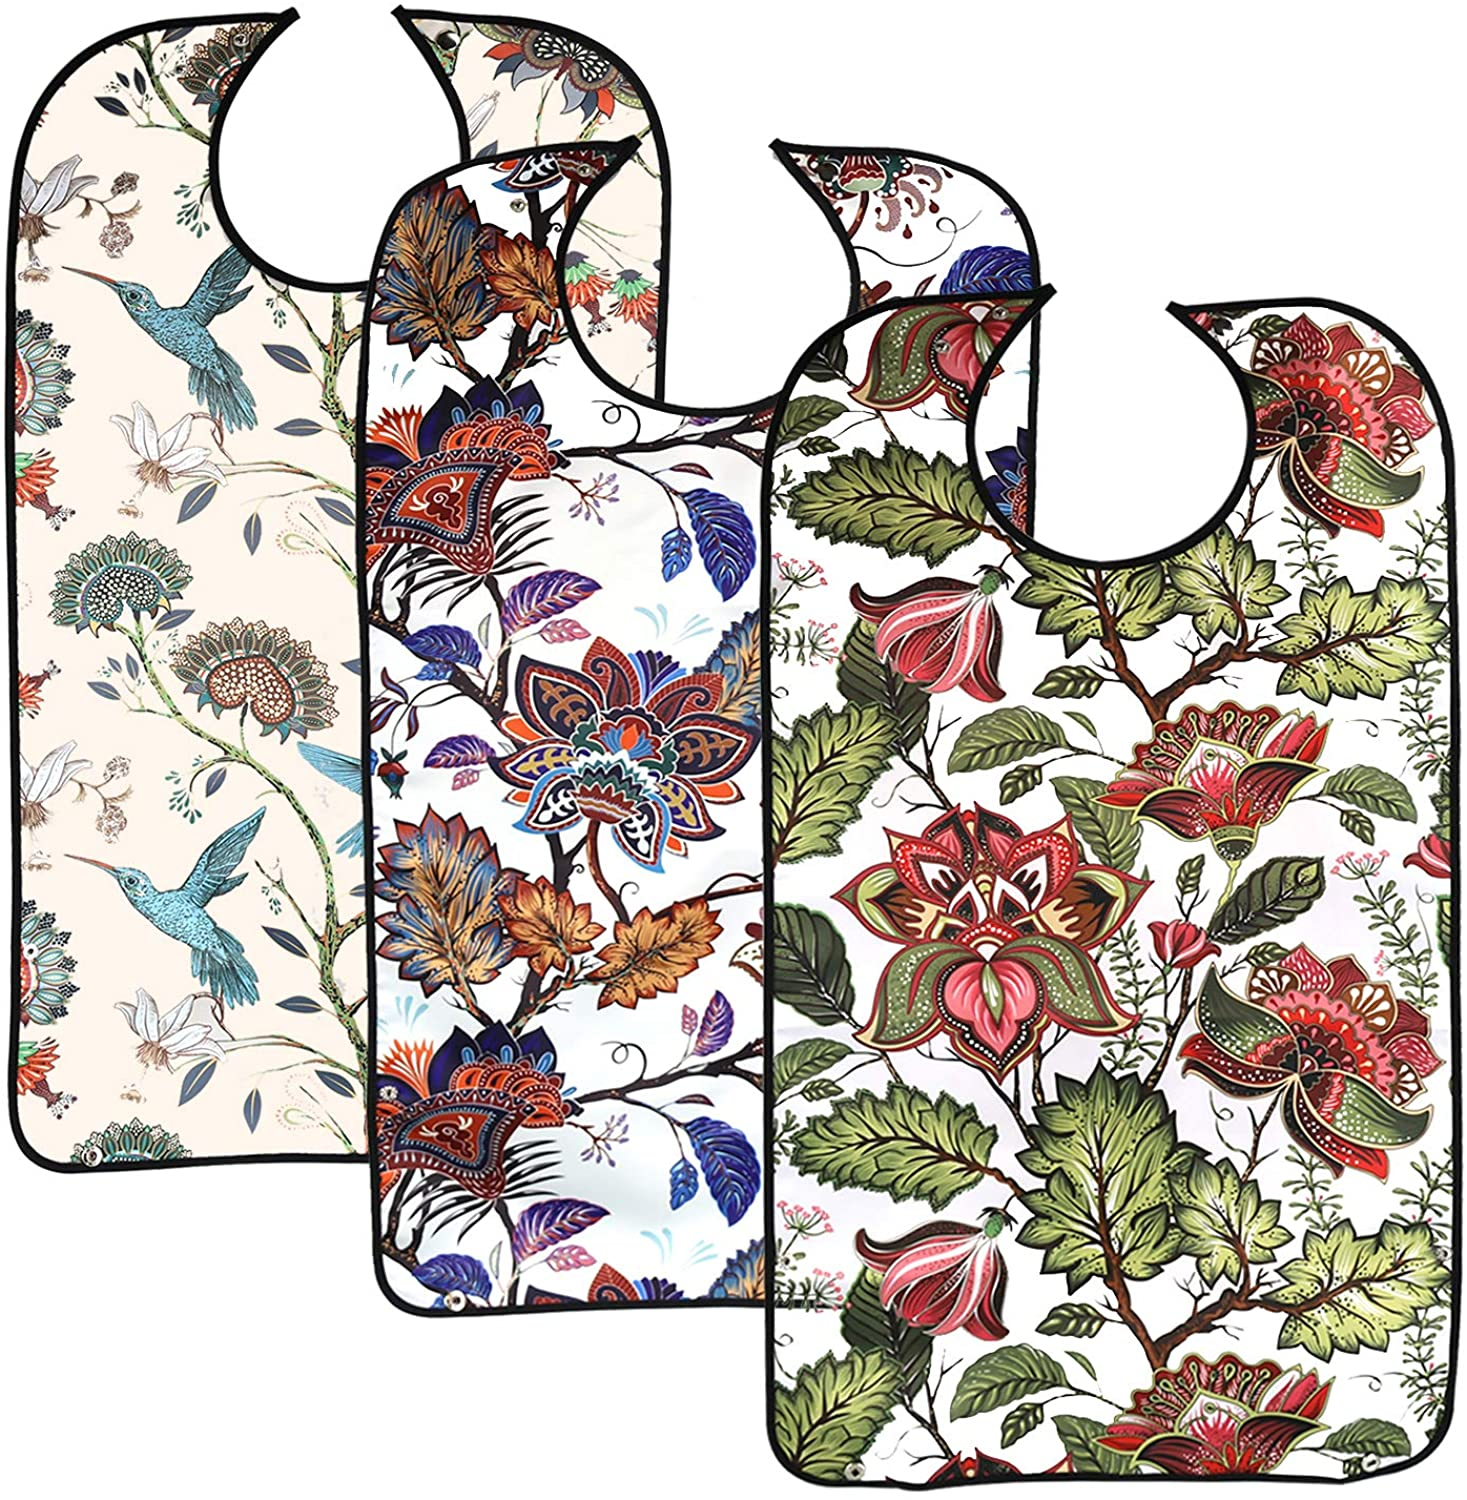 Newthinking 3 Pack Adult Bibs for Eating 55% OFF with Crumb Price reduction